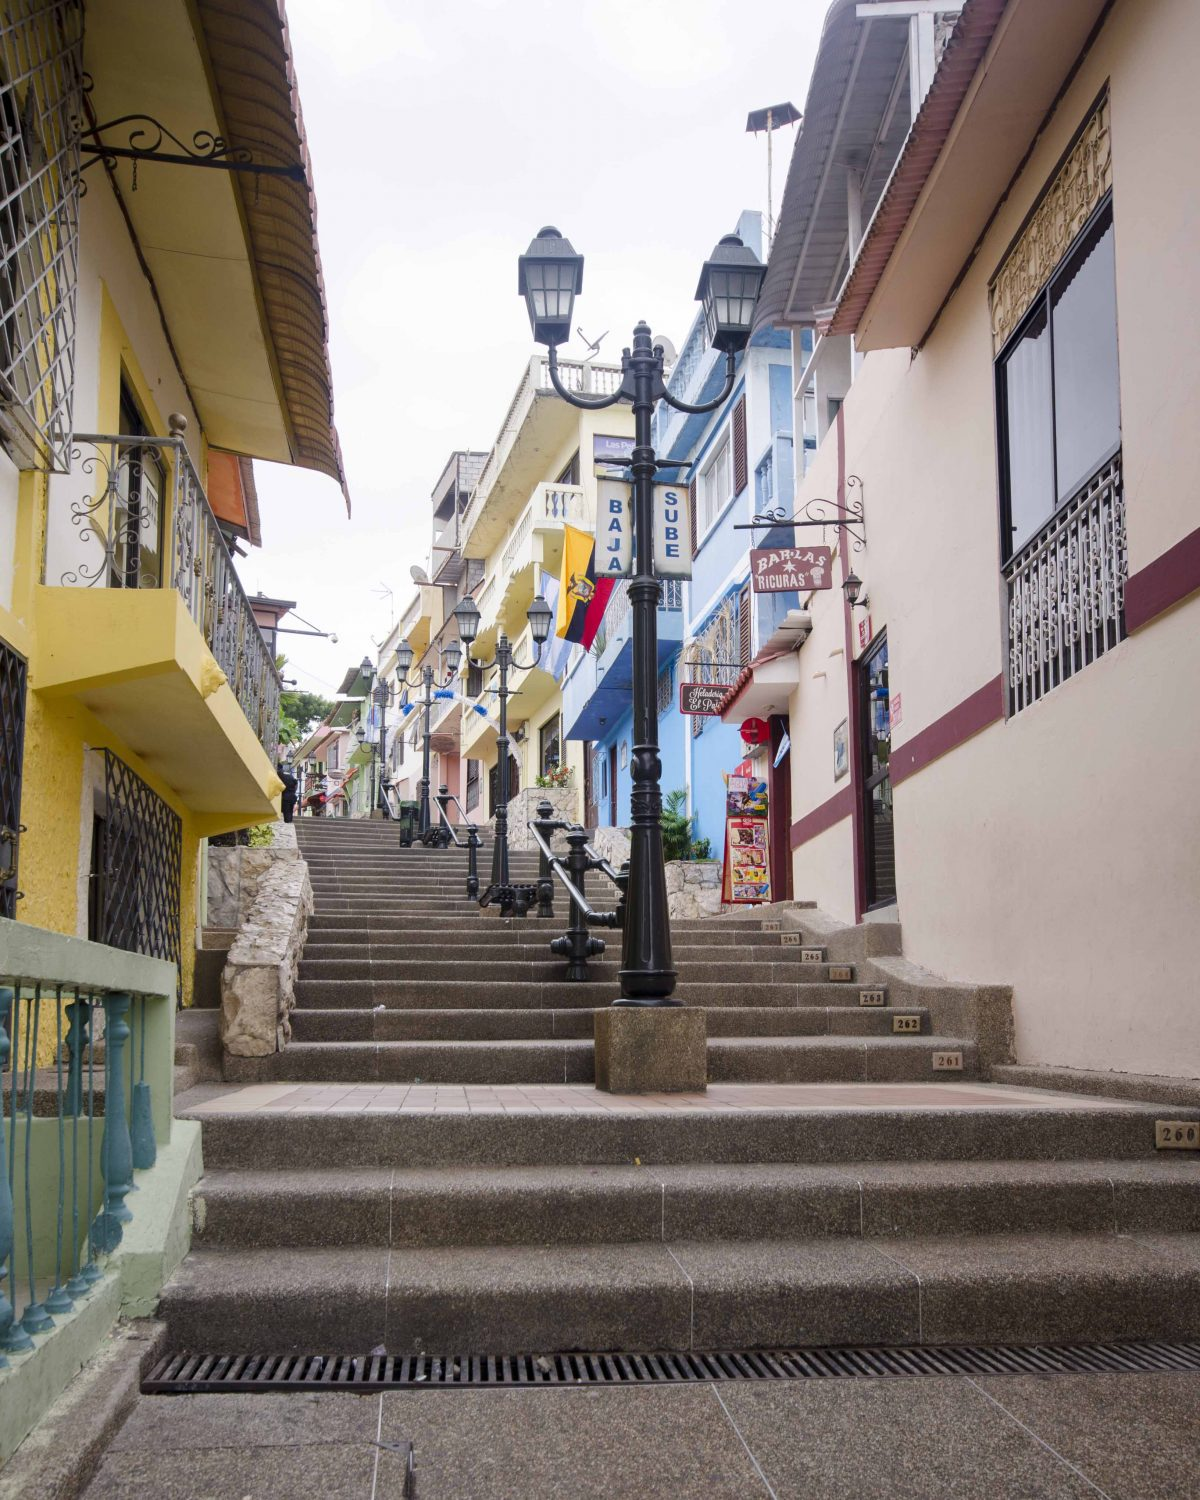 Stairway to the Lighthouse on Cerro Santa Ana, Guayaquil, Ecuador